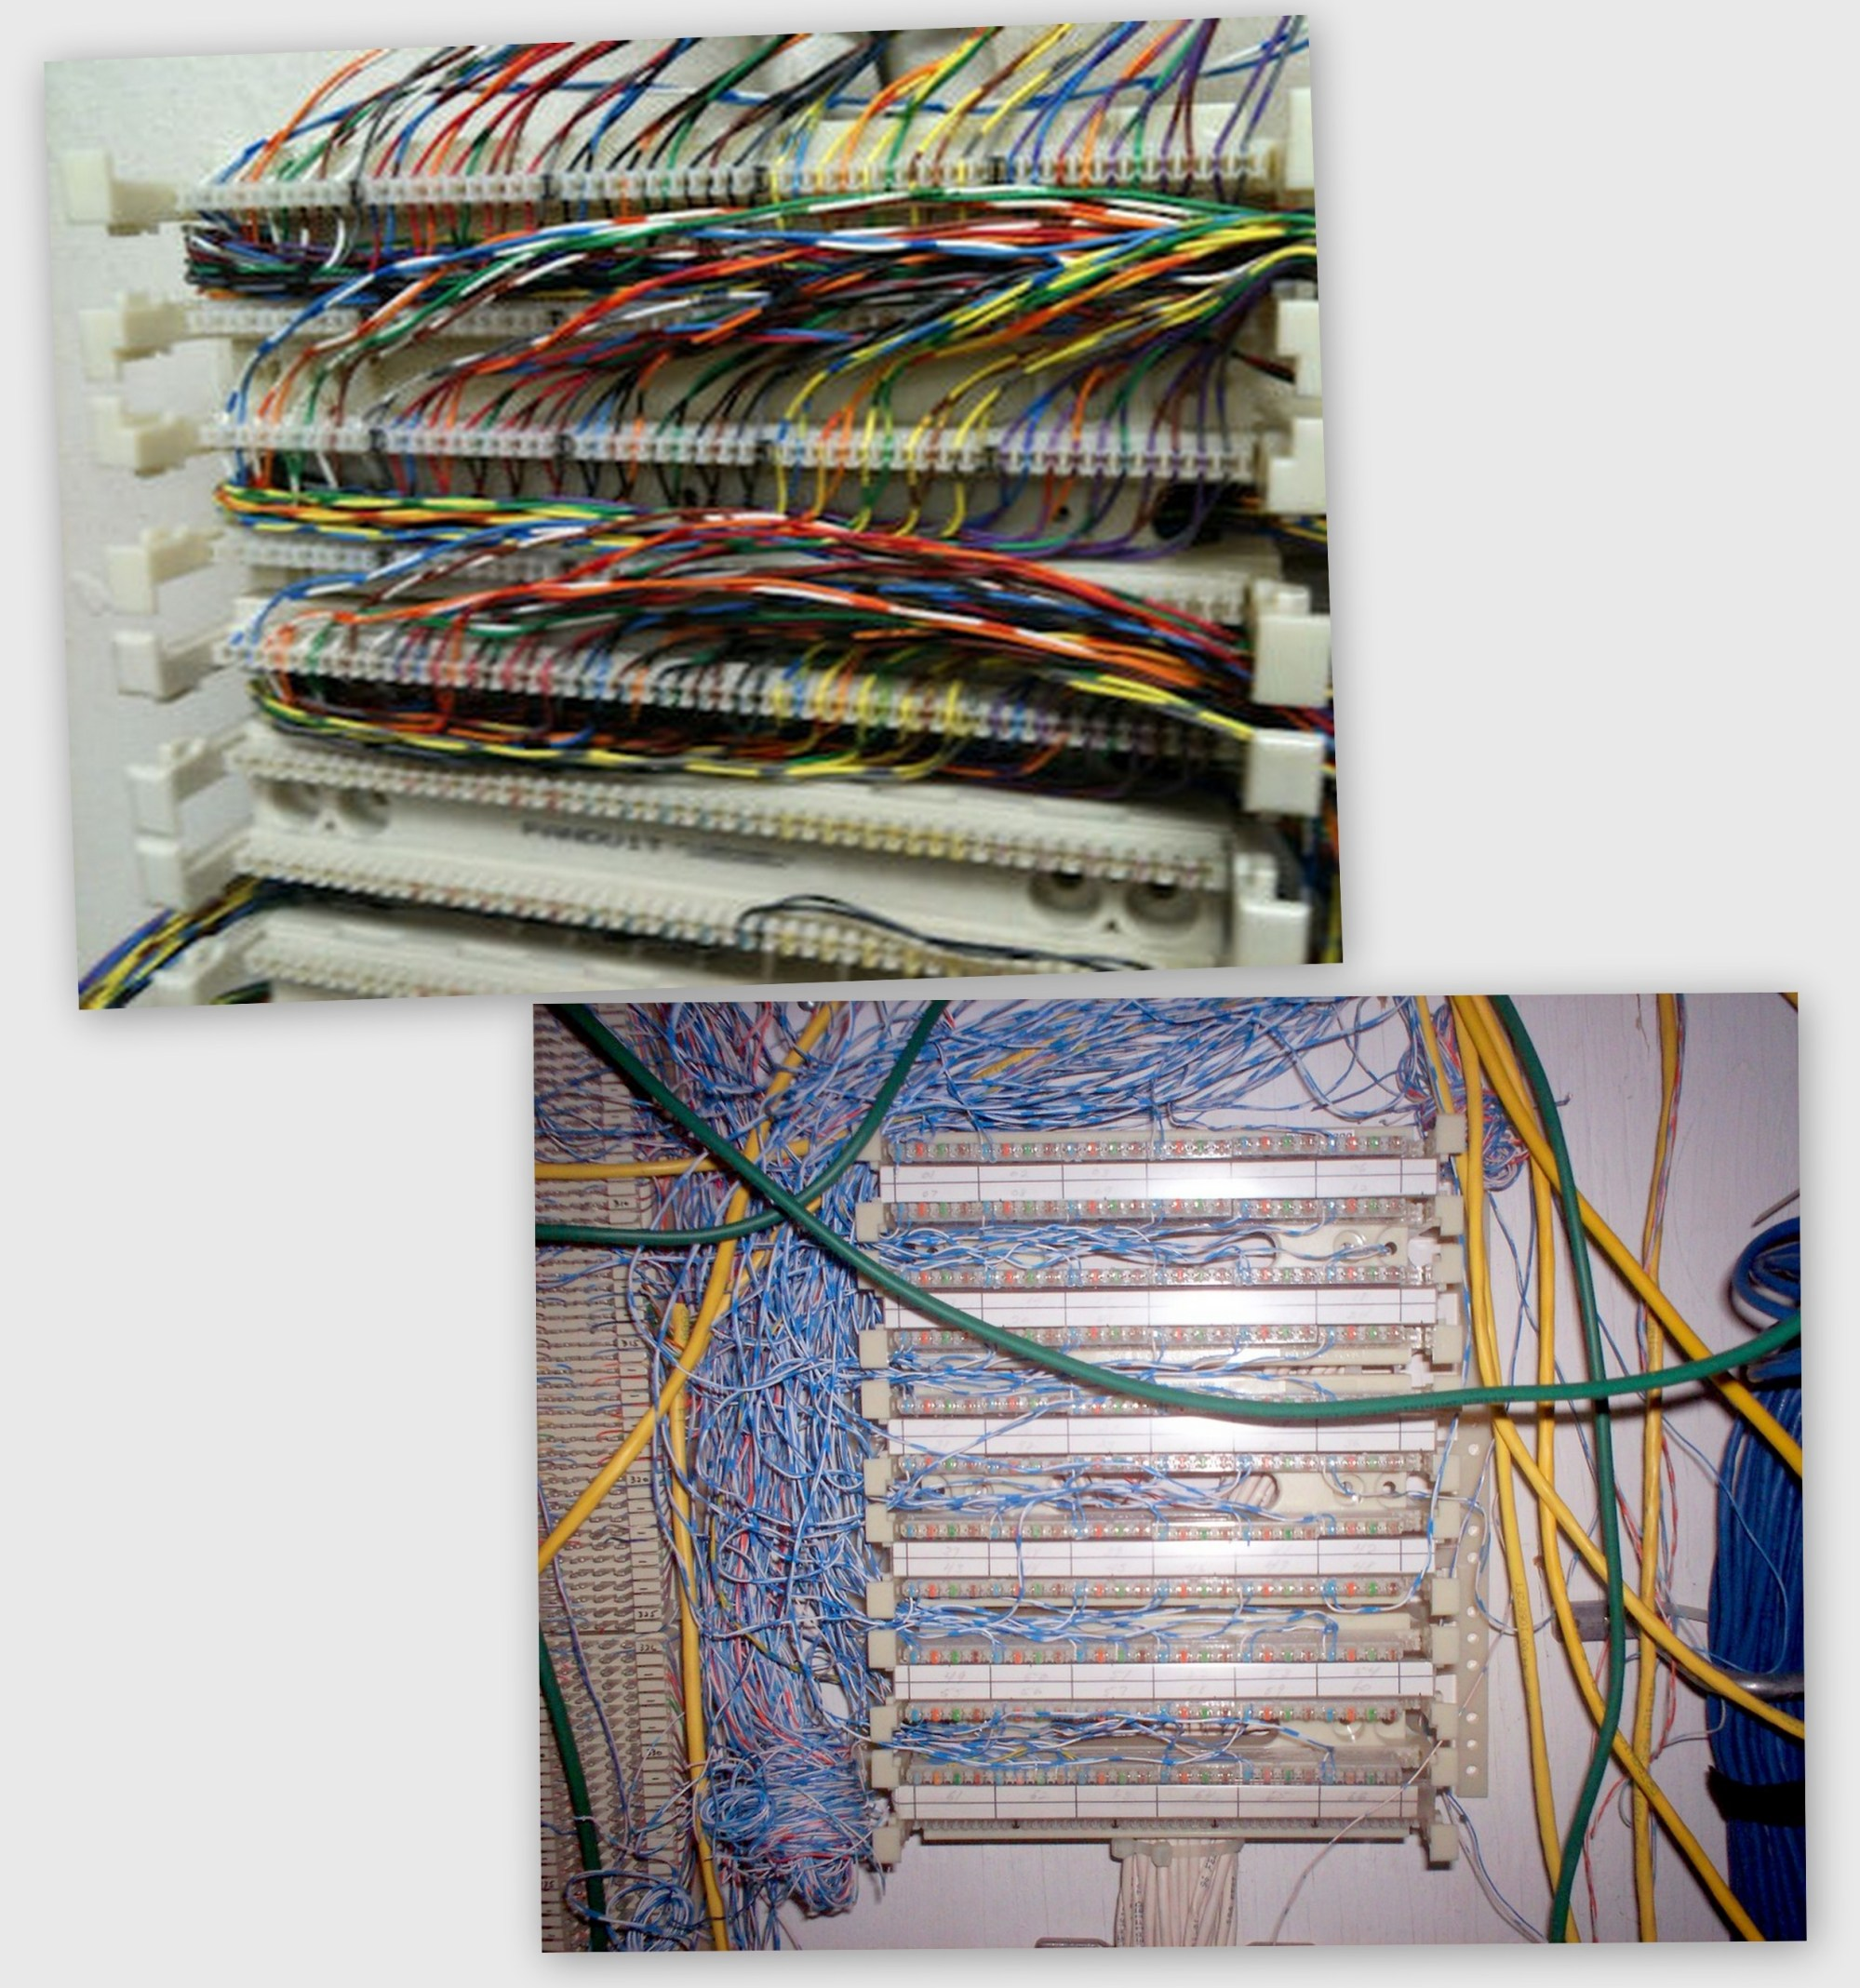 hight resolution of 66 punch down block wiring diagram 66 punch down wiring cat 6 punch down block 66